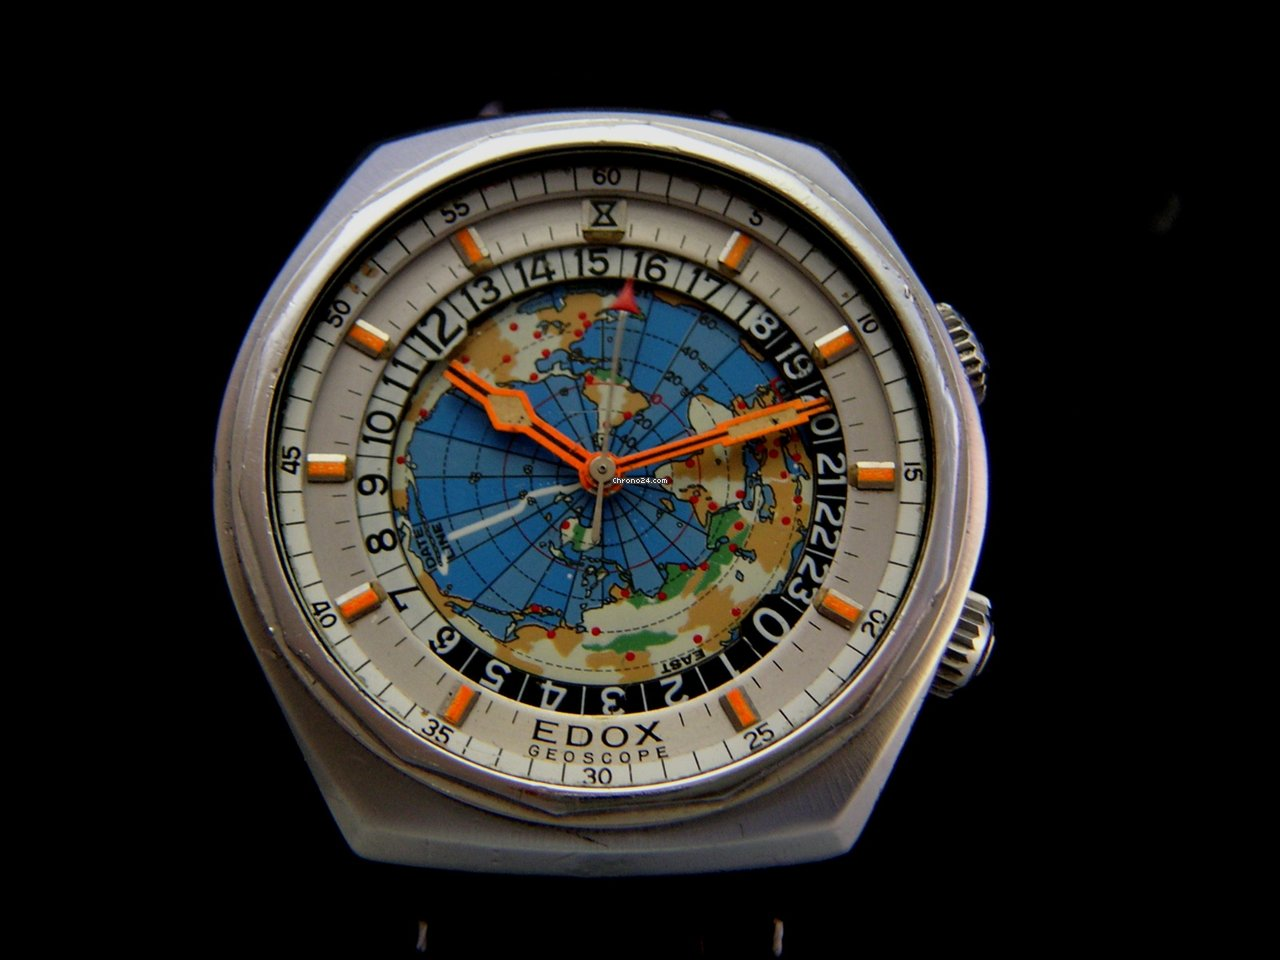 edox rare vintage geoscope automatic world timer verkauft auf chrono24. Black Bedroom Furniture Sets. Home Design Ideas